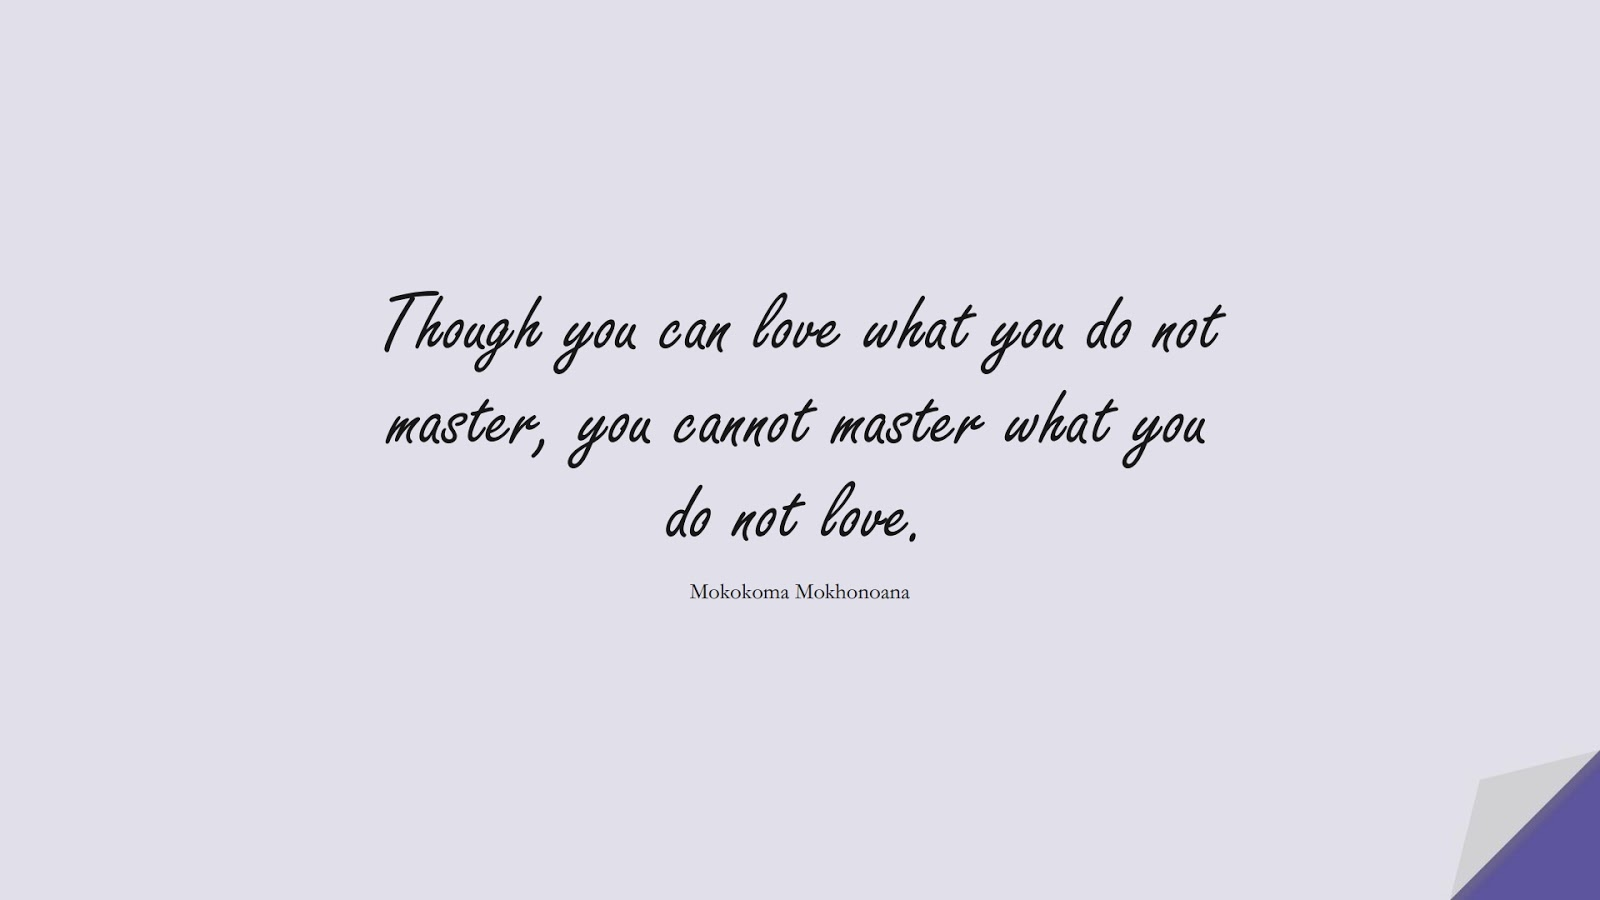 Though you can love what you do not master, you cannot master what you do not love. (Mokokoma Mokhonoana);  #HardWorkQuotes